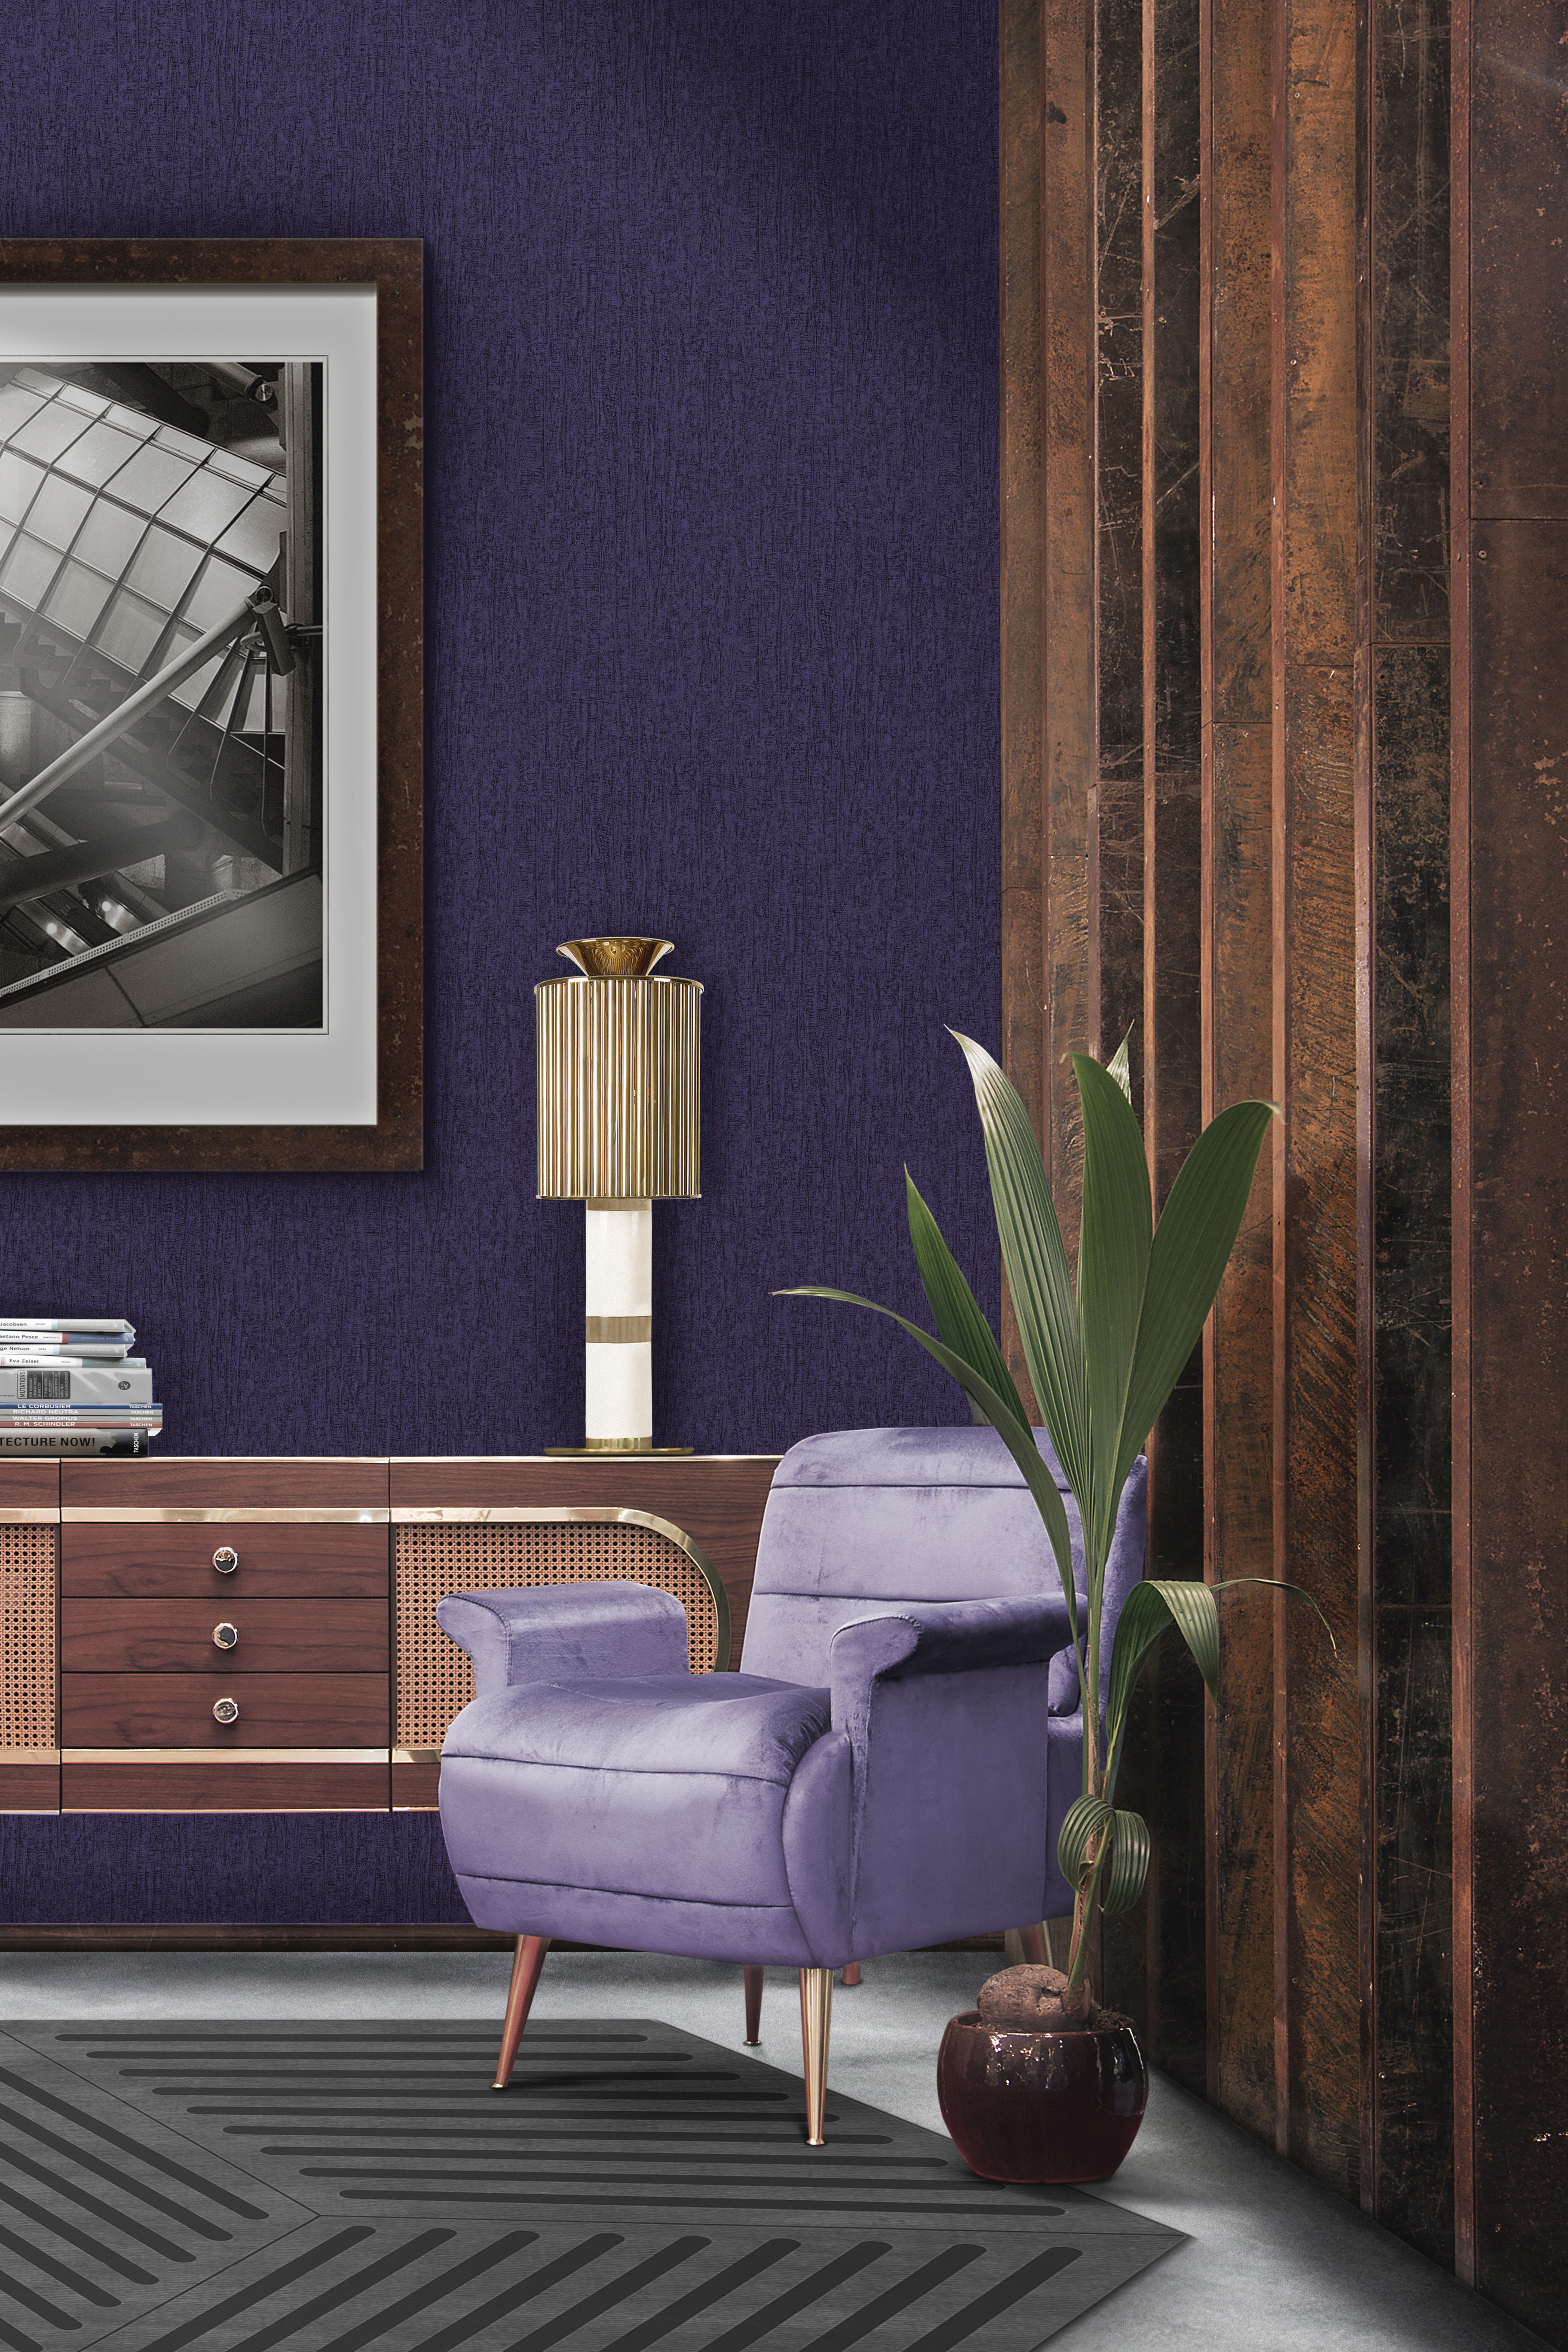 7 Essential Ways to Make Ultra Violet the Star of Your Home Decor_1 ultra violet 7 Essential Ways to Make Ultra Violet the Star of Your Home Decor 5 Essential Ways to Make Ultra Violet the Star of Your Home Decor 1